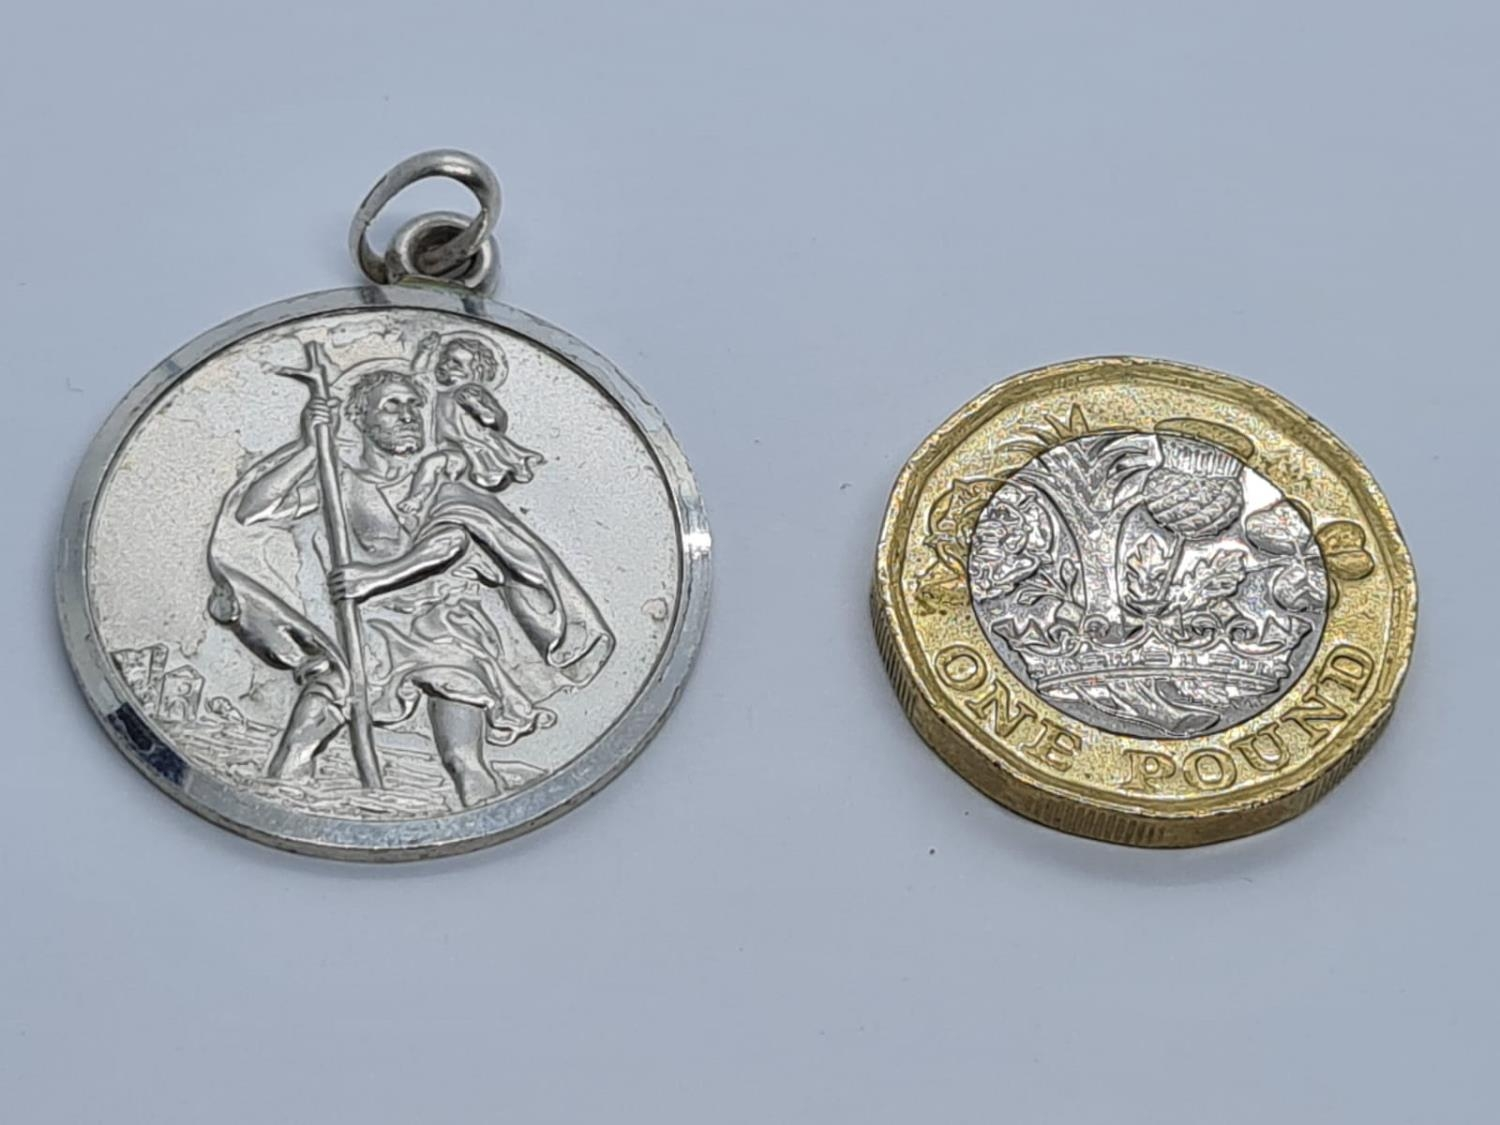 STERLING SILVER LARGE ROUND ST CHRISTOPHER PENDANT WEIGHT 8.5G AND 34MM DIAMETER APPROX - Image 4 of 4